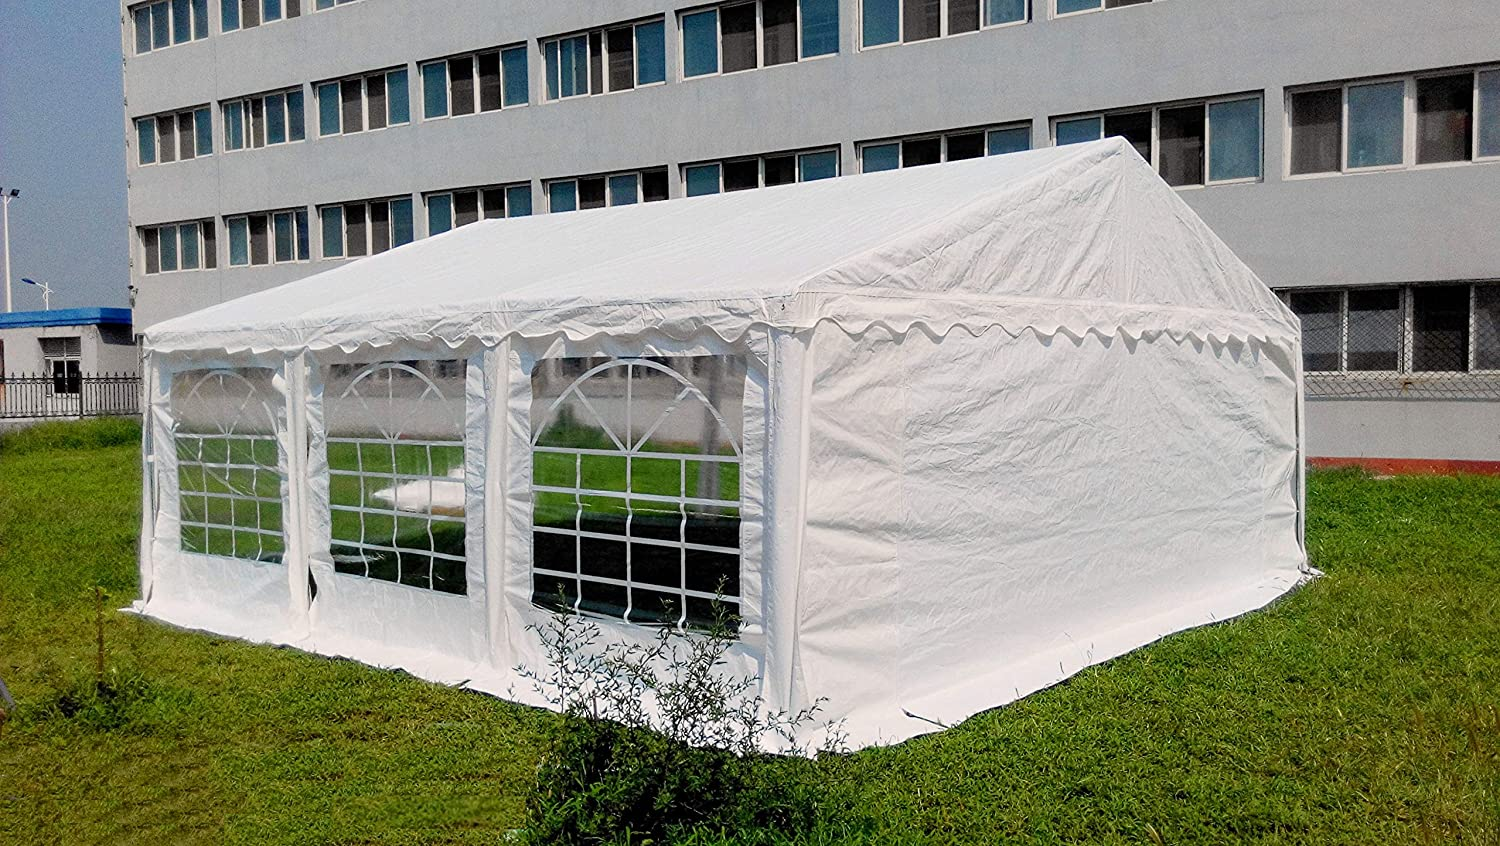 Amazon.com American Phoenix Canopy Tent foot Large White Party Tent Gazebo Canopy Commercial Fair Shelter Car Shelter Wedding Events Party Heavy Duty Tent- ... & Amazon.com: American Phoenix Canopy Tent foot Large White Party ...